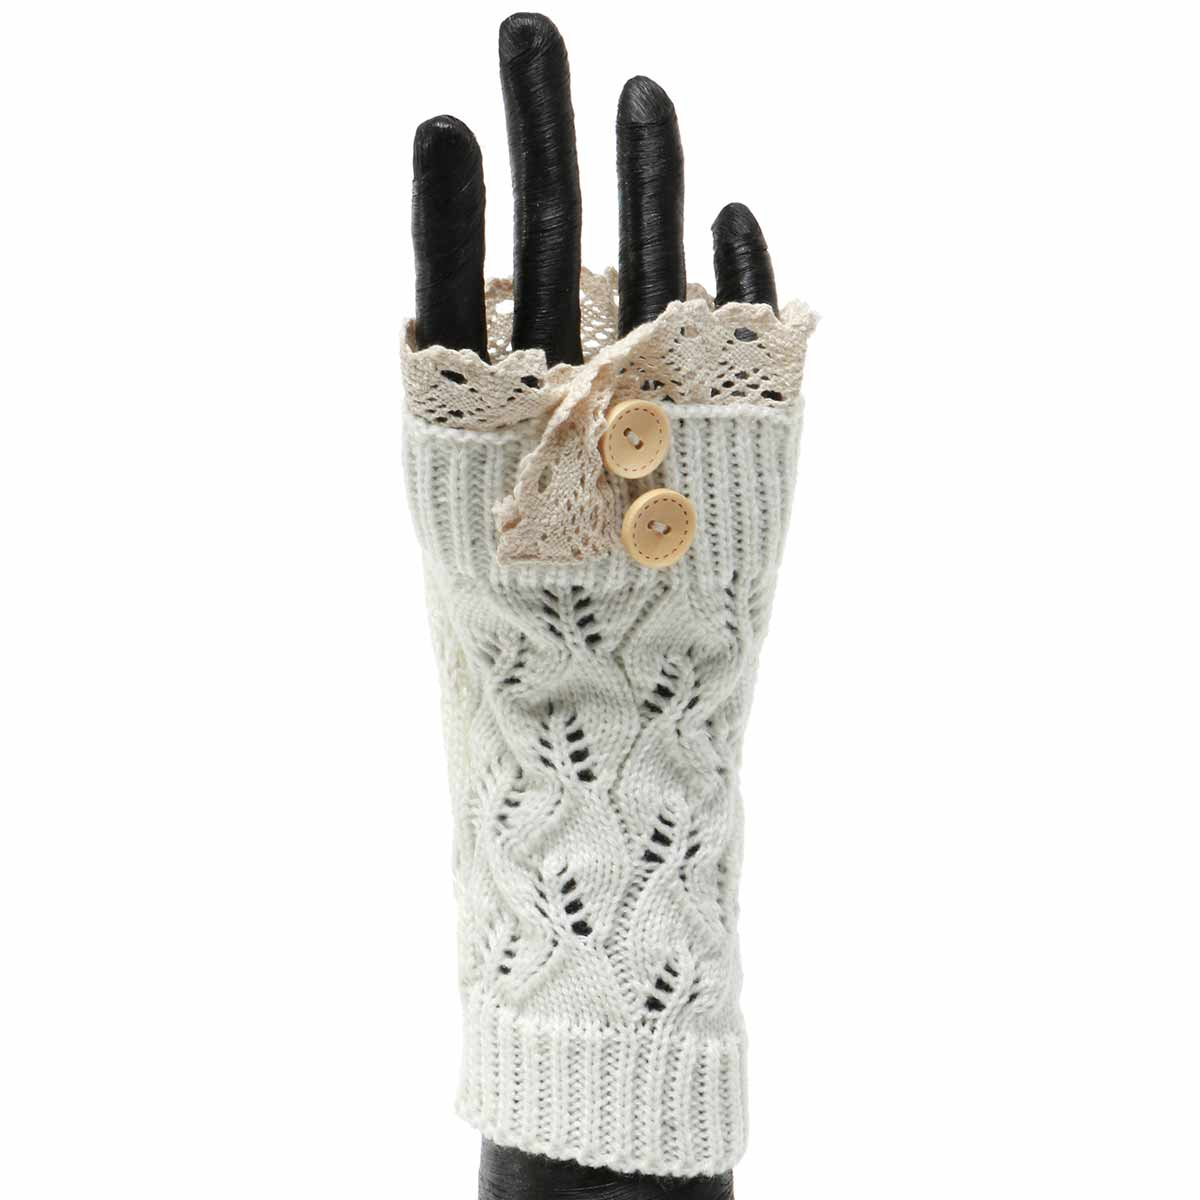 CREAM KNIT FINGERLESS GLOVE WITH LACE AND BUTTONS 50sp